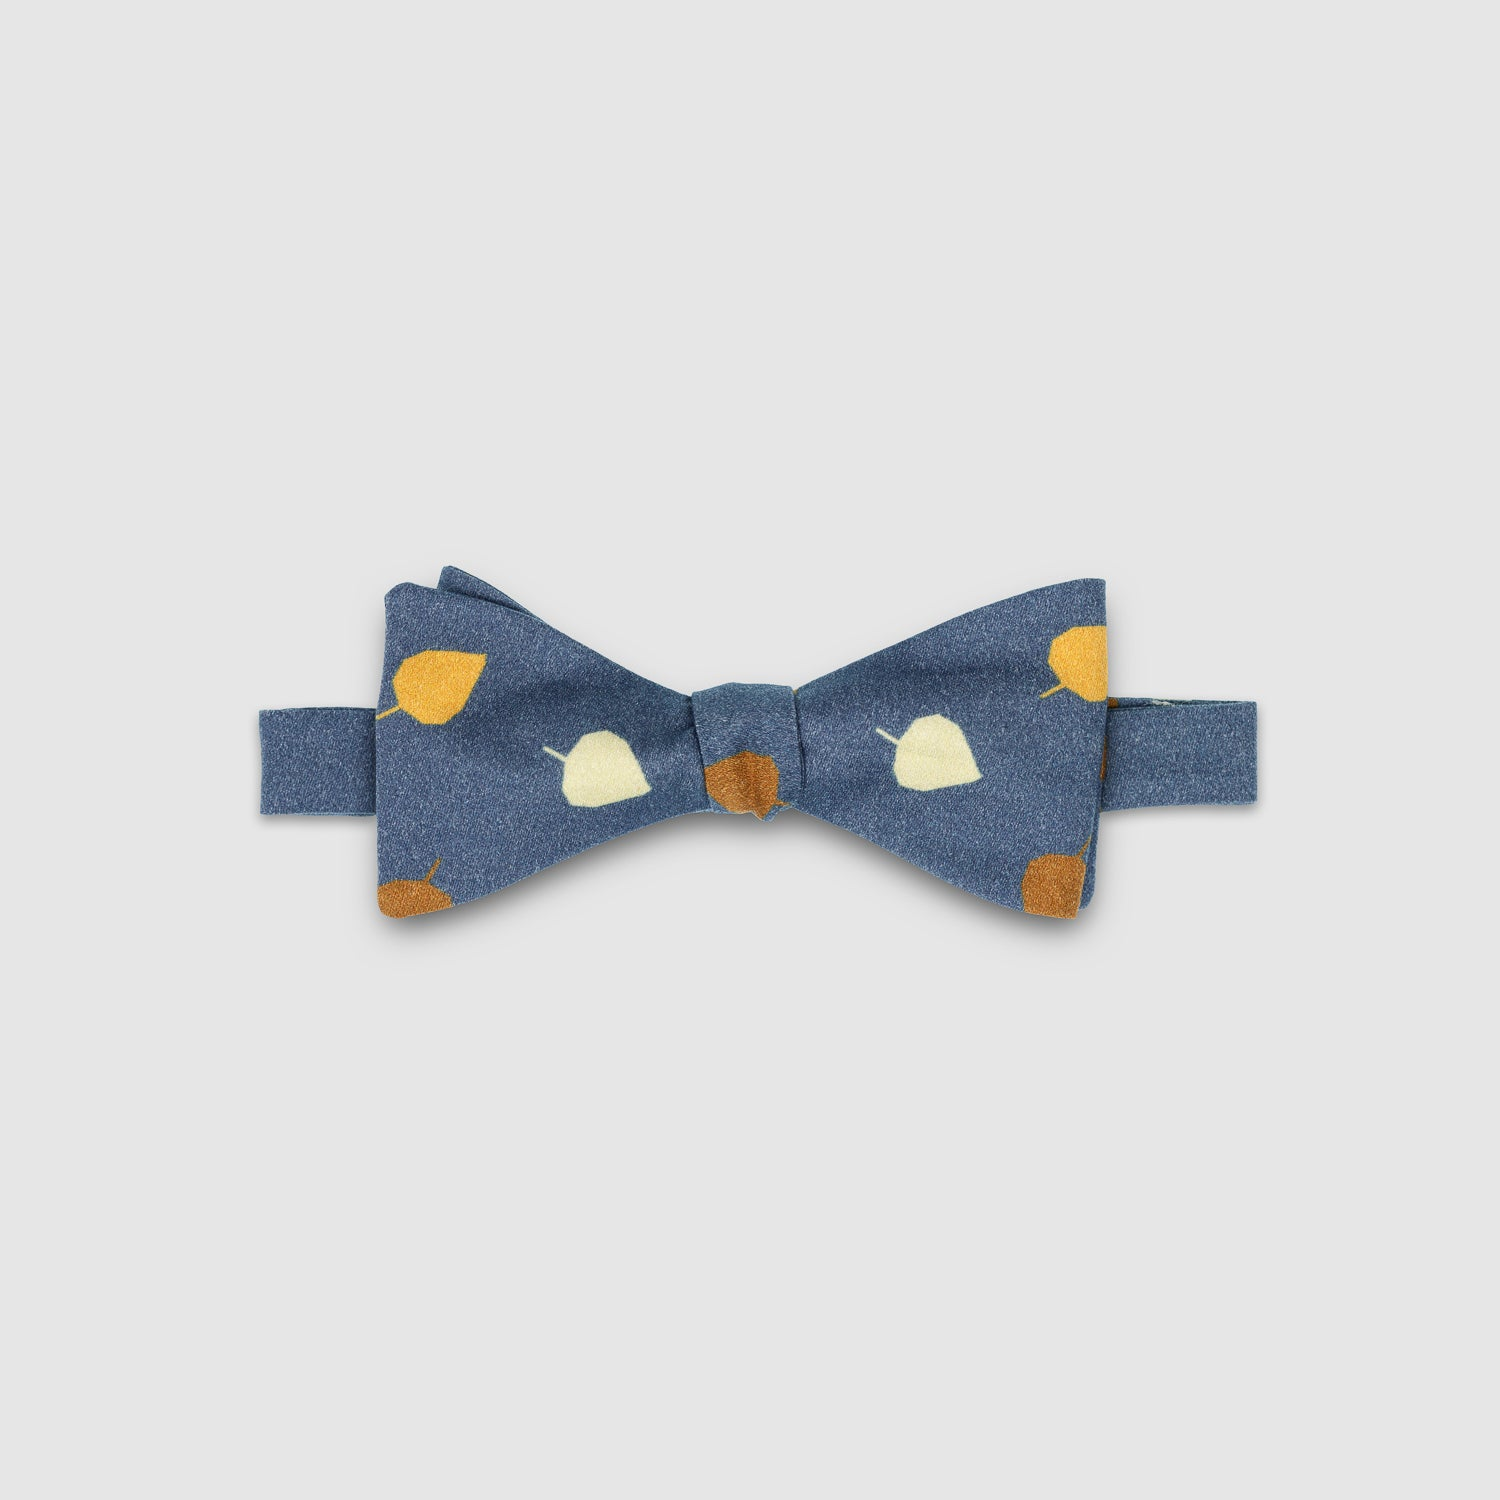 LEVIS - the bow tie